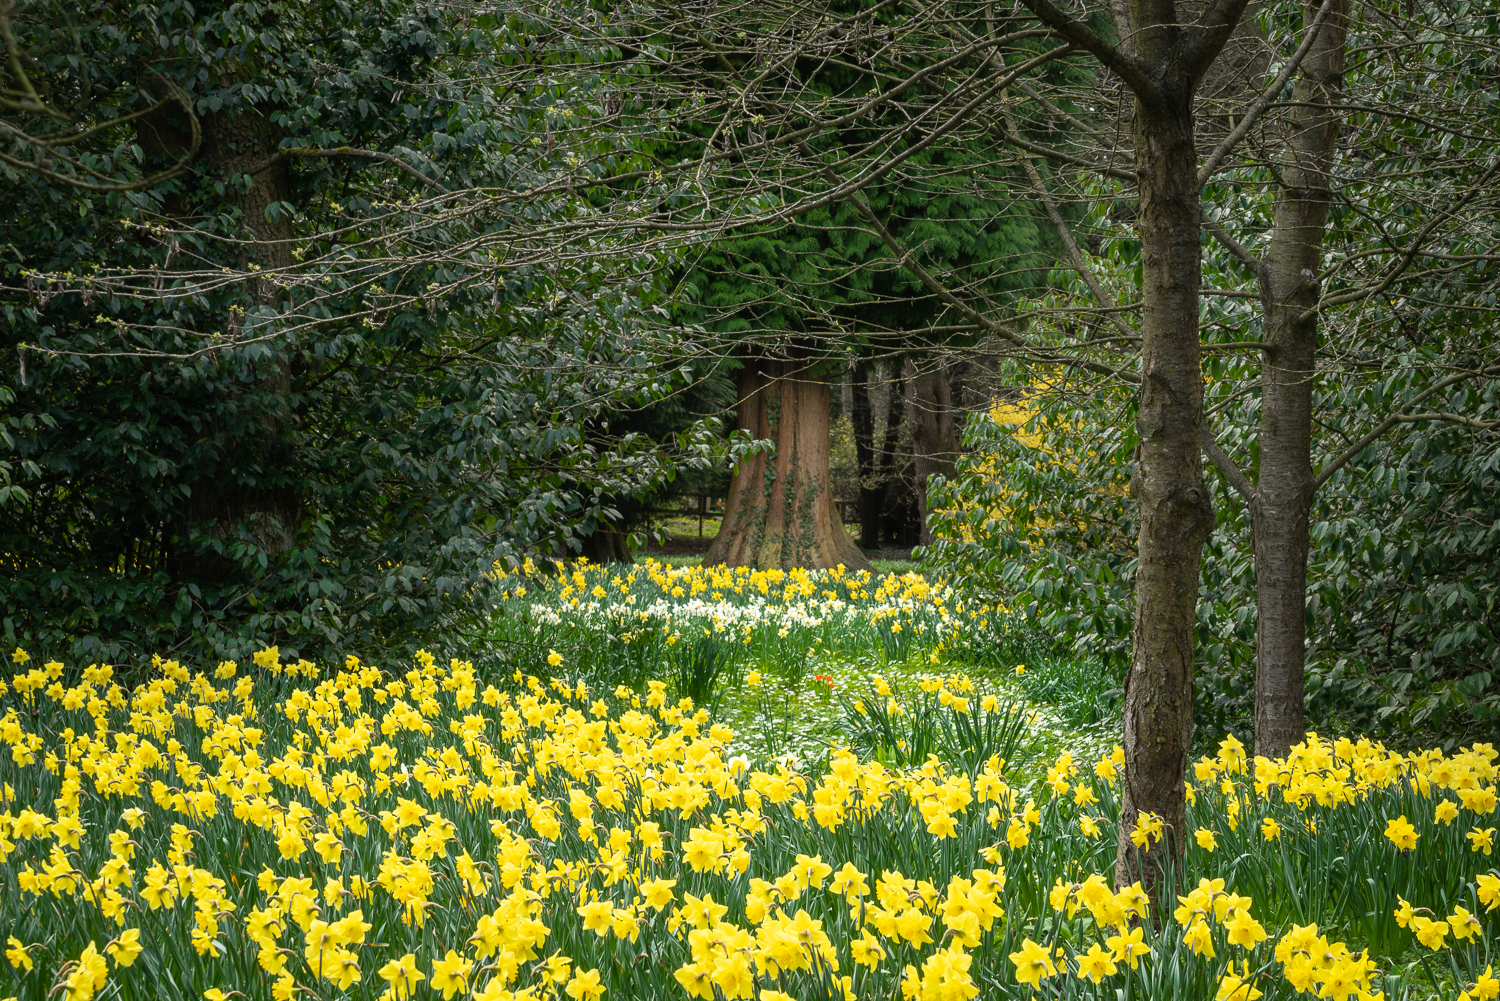 Daffodils at Thorp Perrow